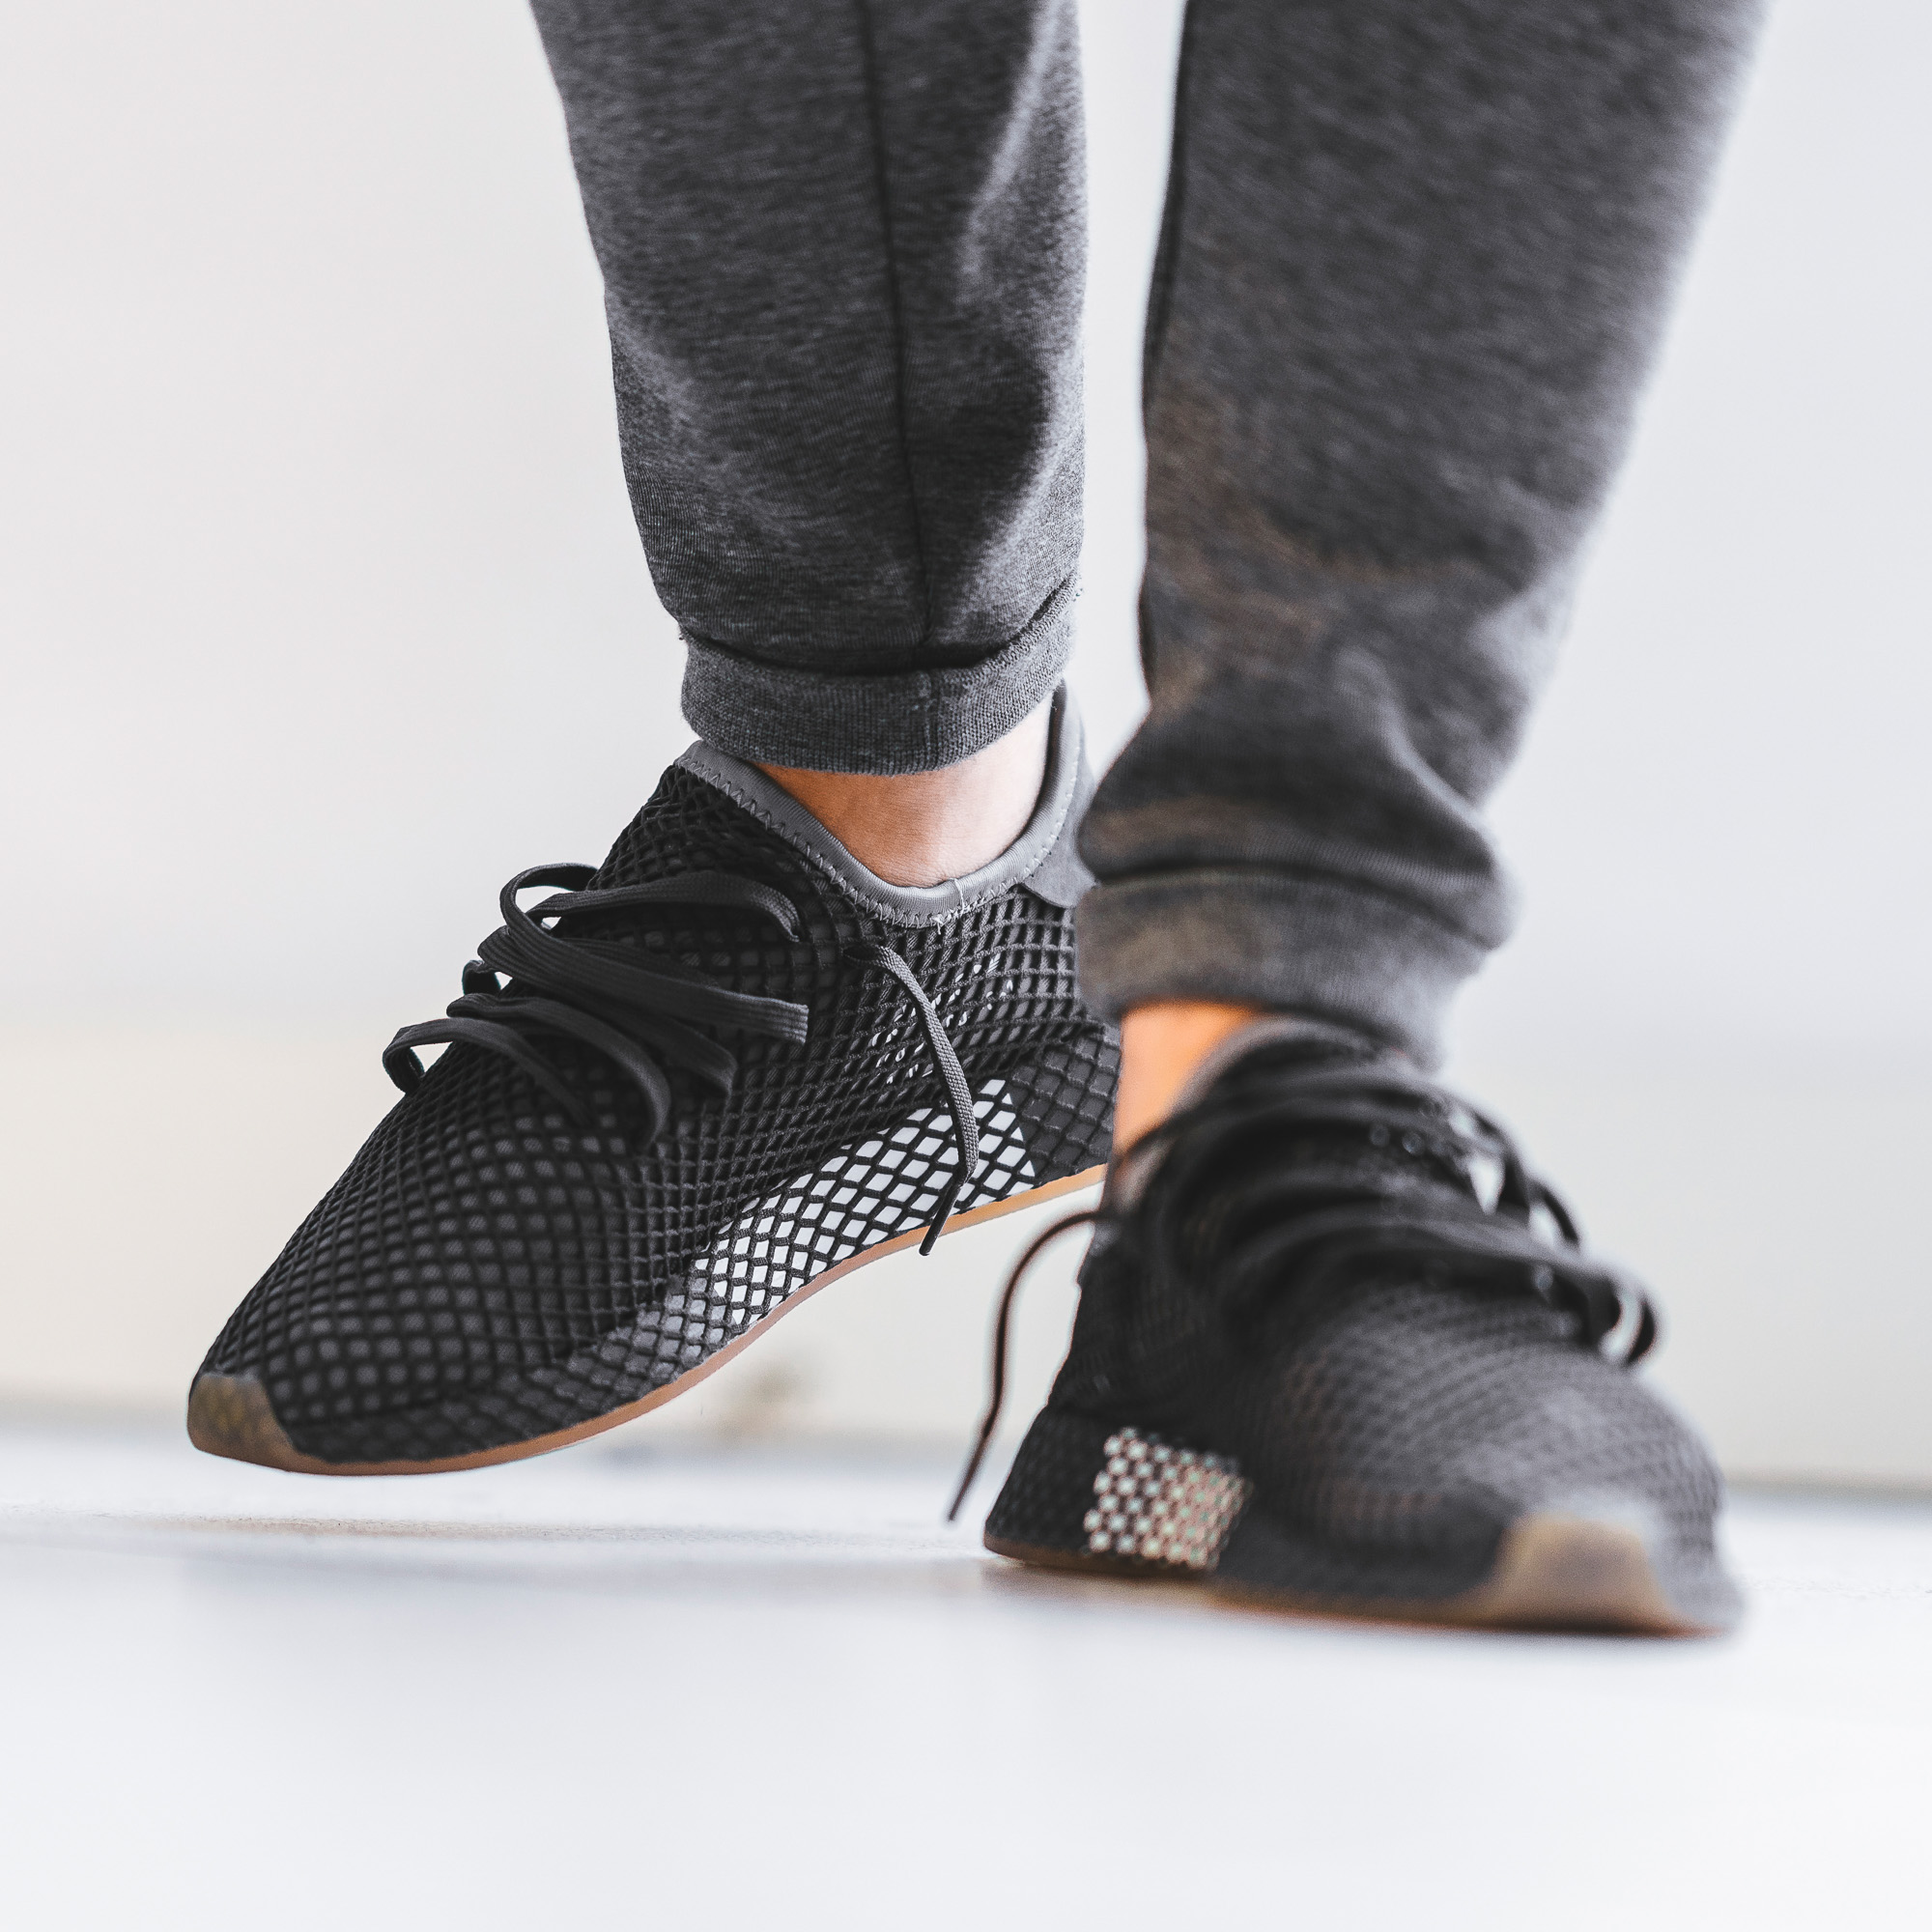 aaad4563493 Bstnstore: New Adidas Deerupt Styles | NOW AVAILABLE | Milled